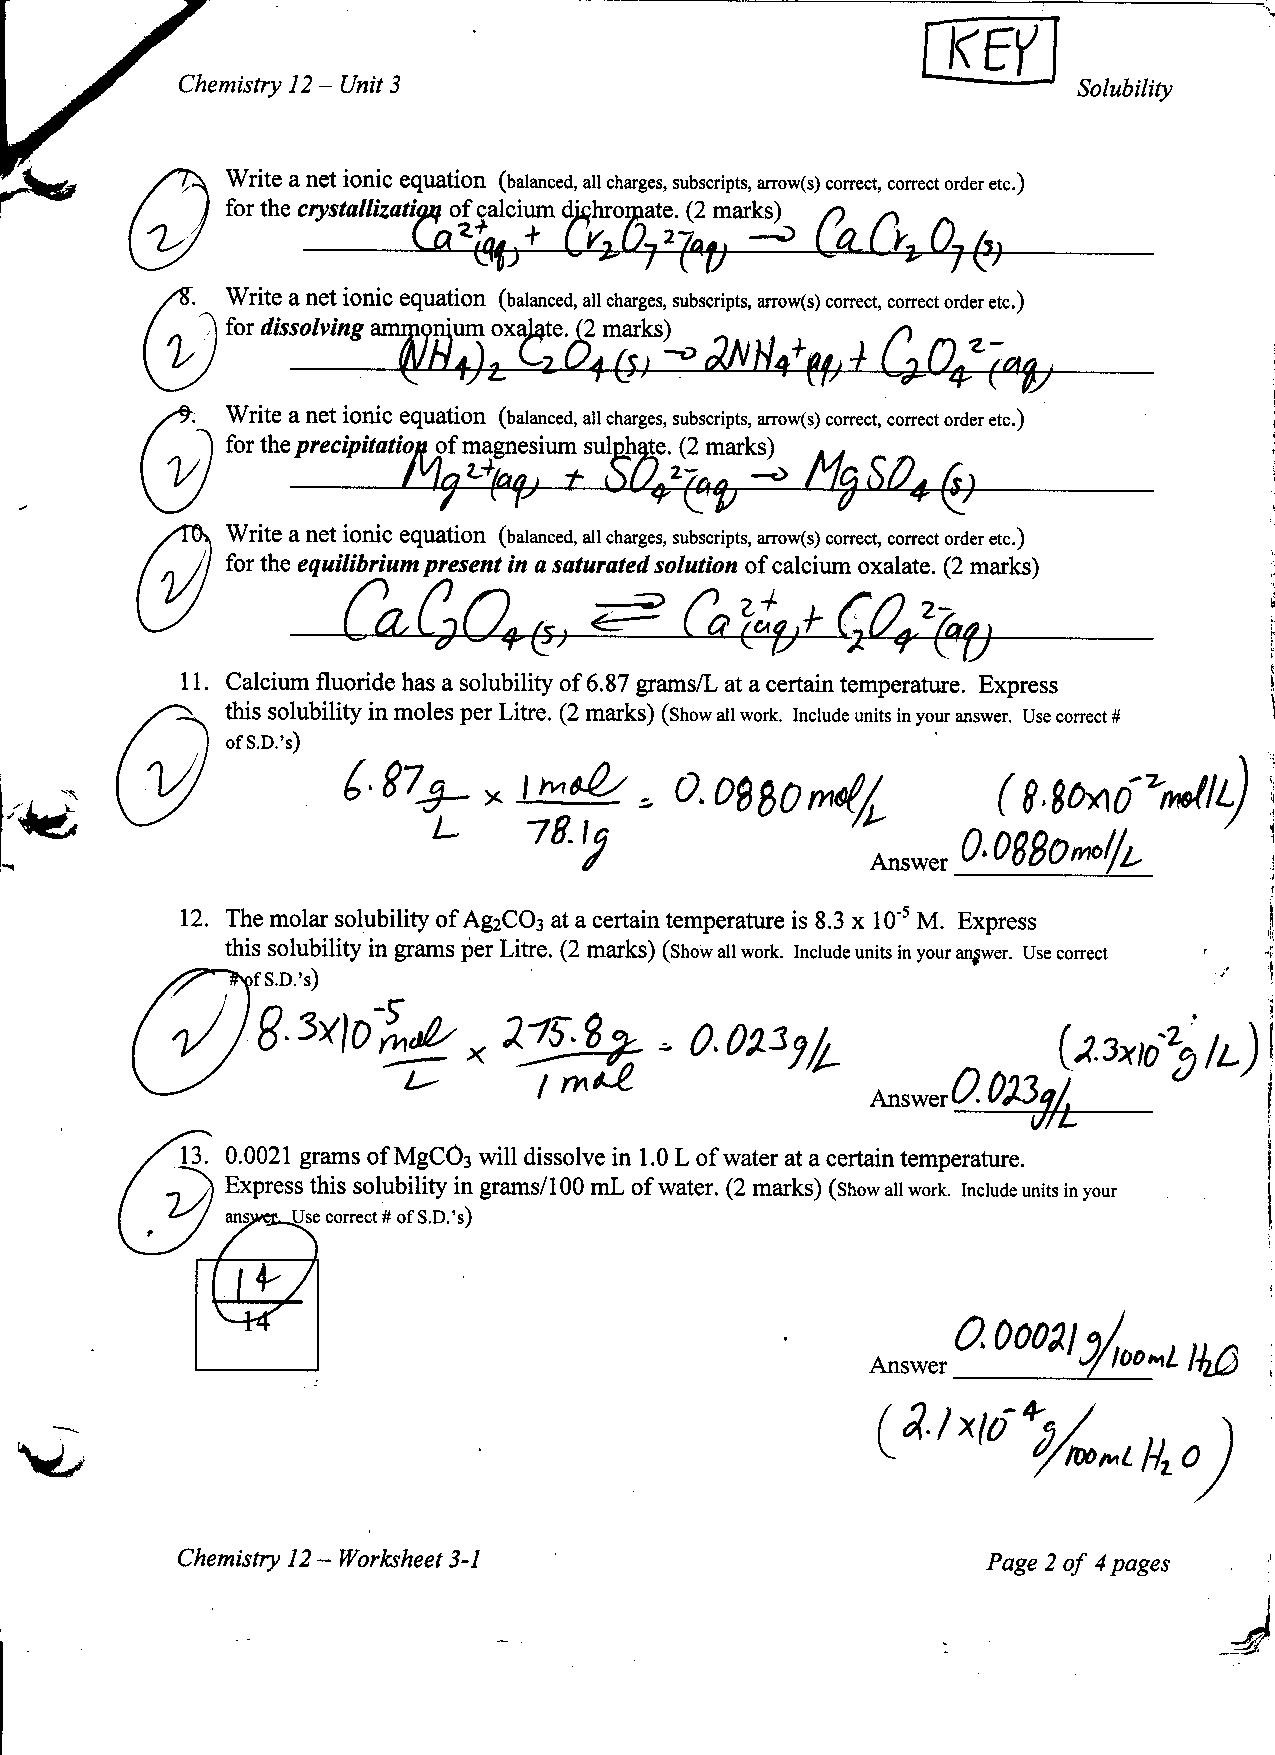 Solubility Graph Worksheet Answers solubility Graph Worksheet Answers Nidecmege